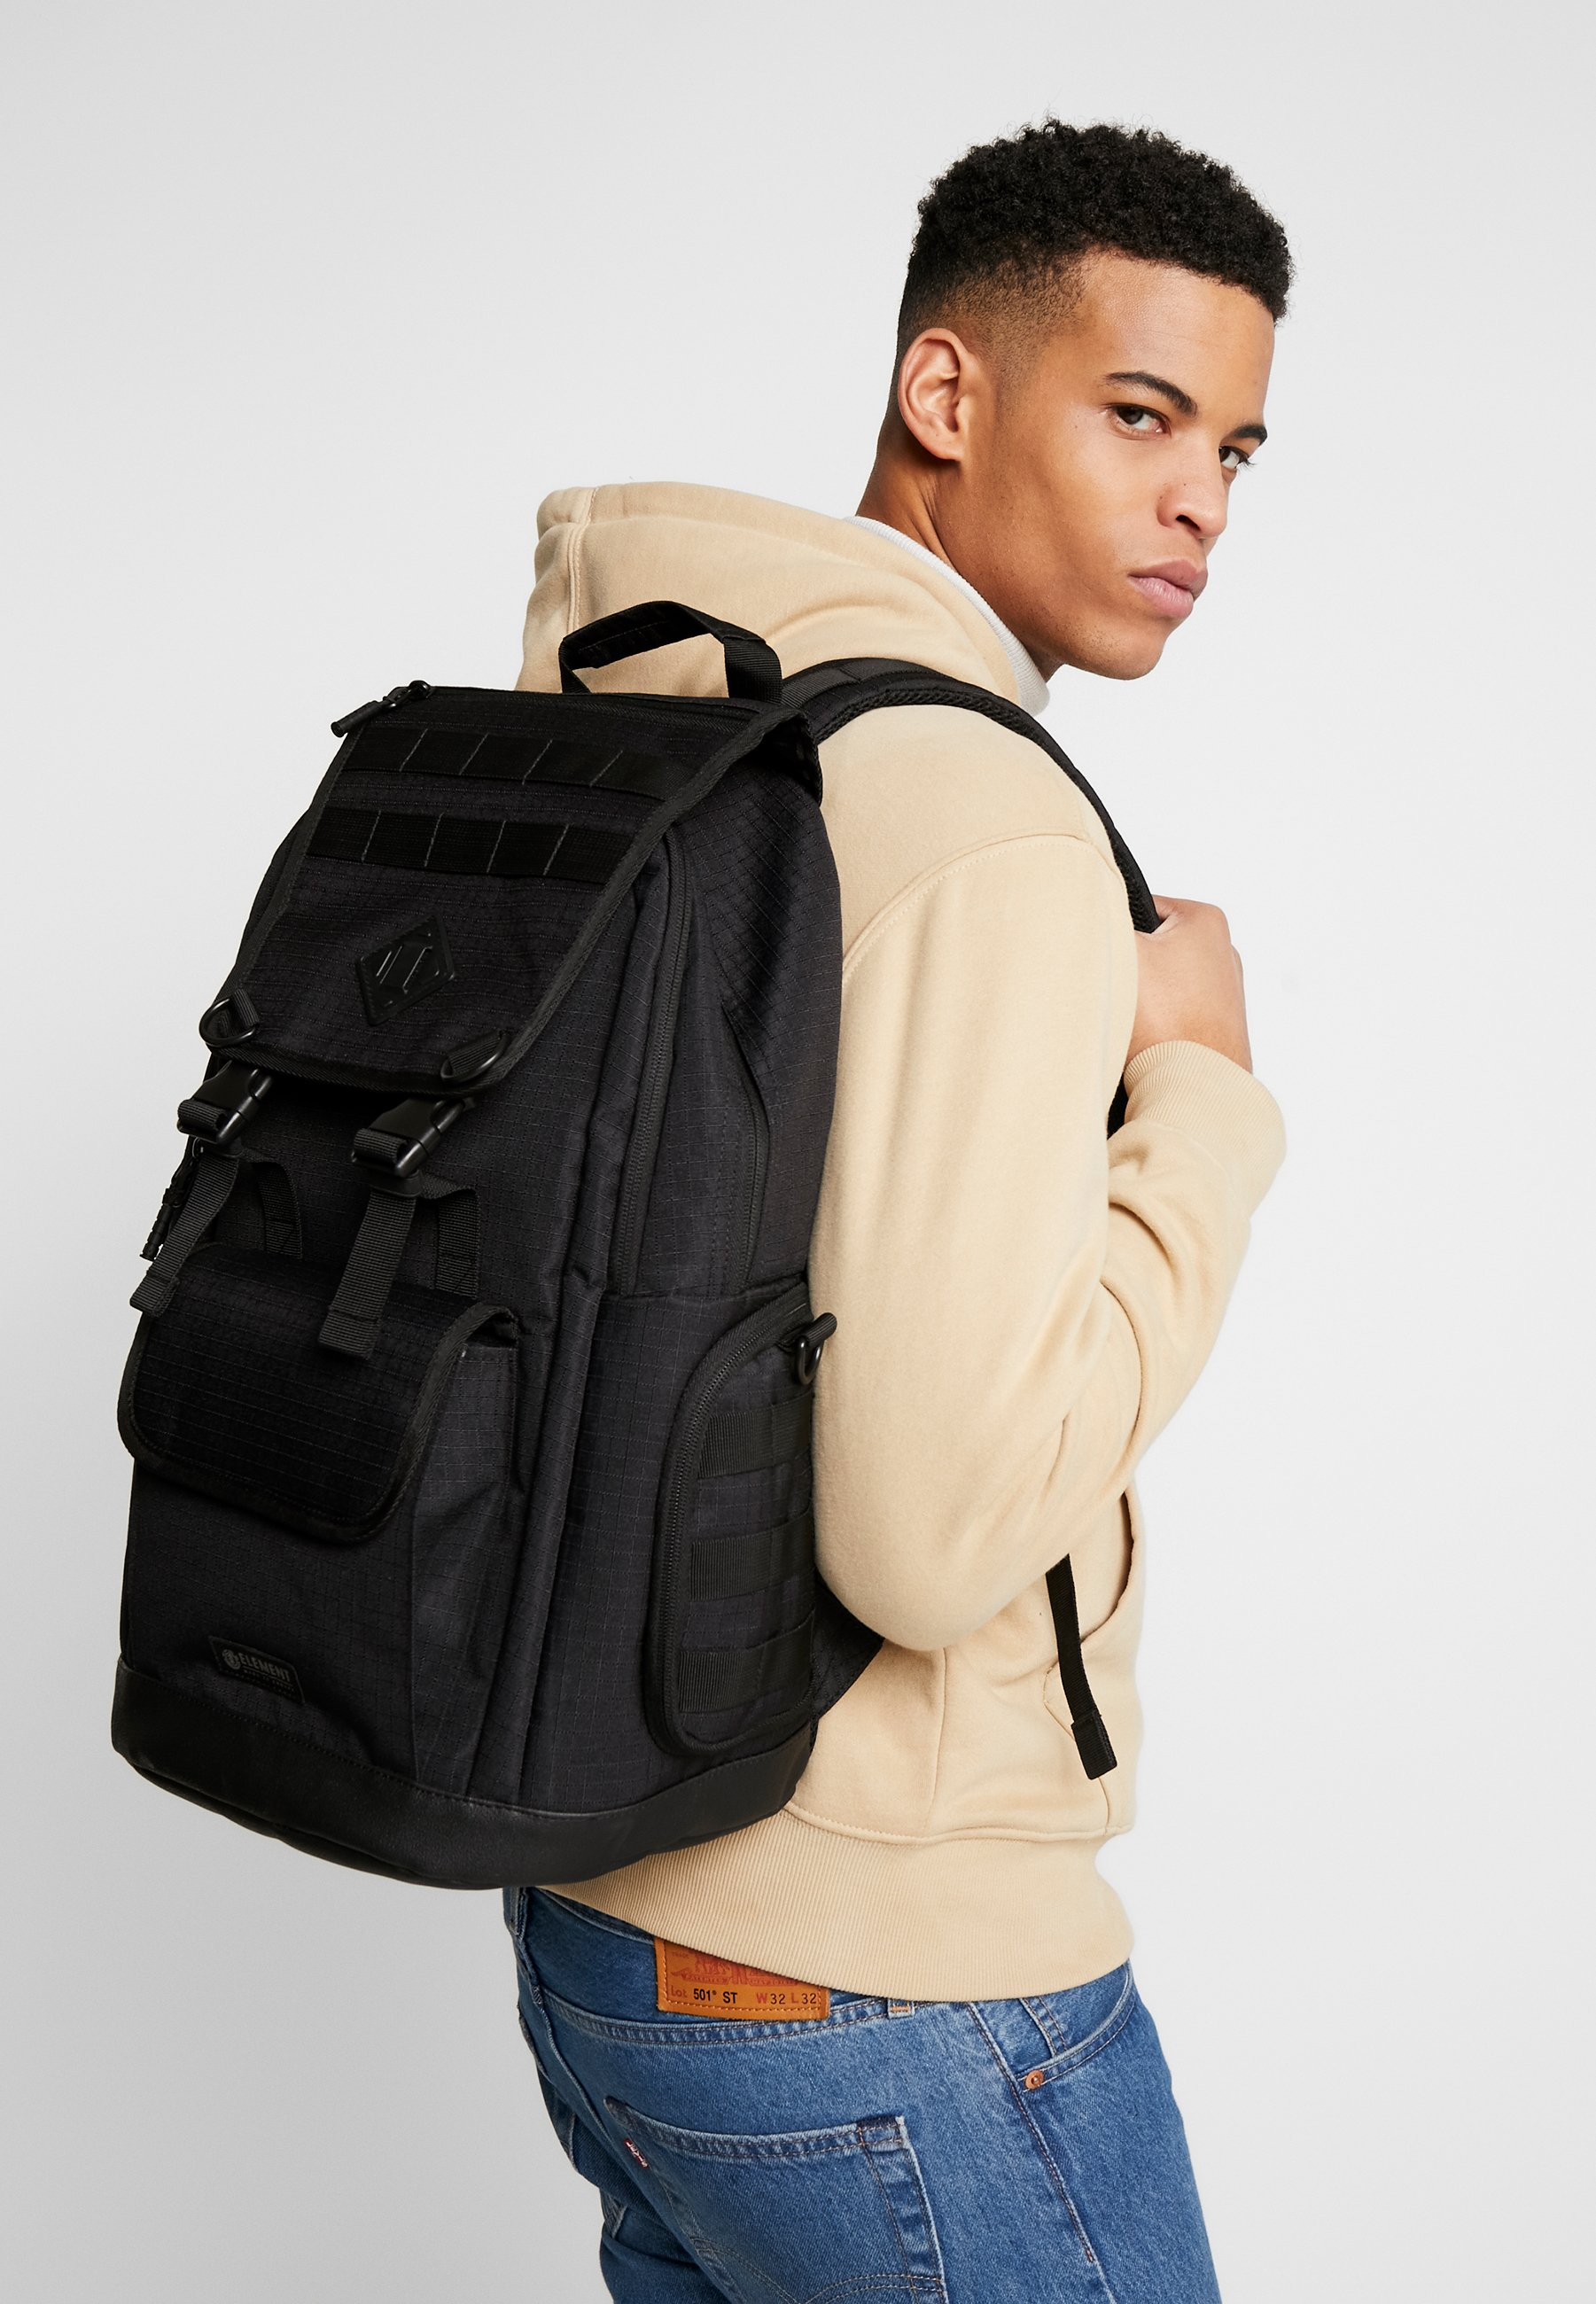 CYPRESS RECRUIT Tagesrucksack all black